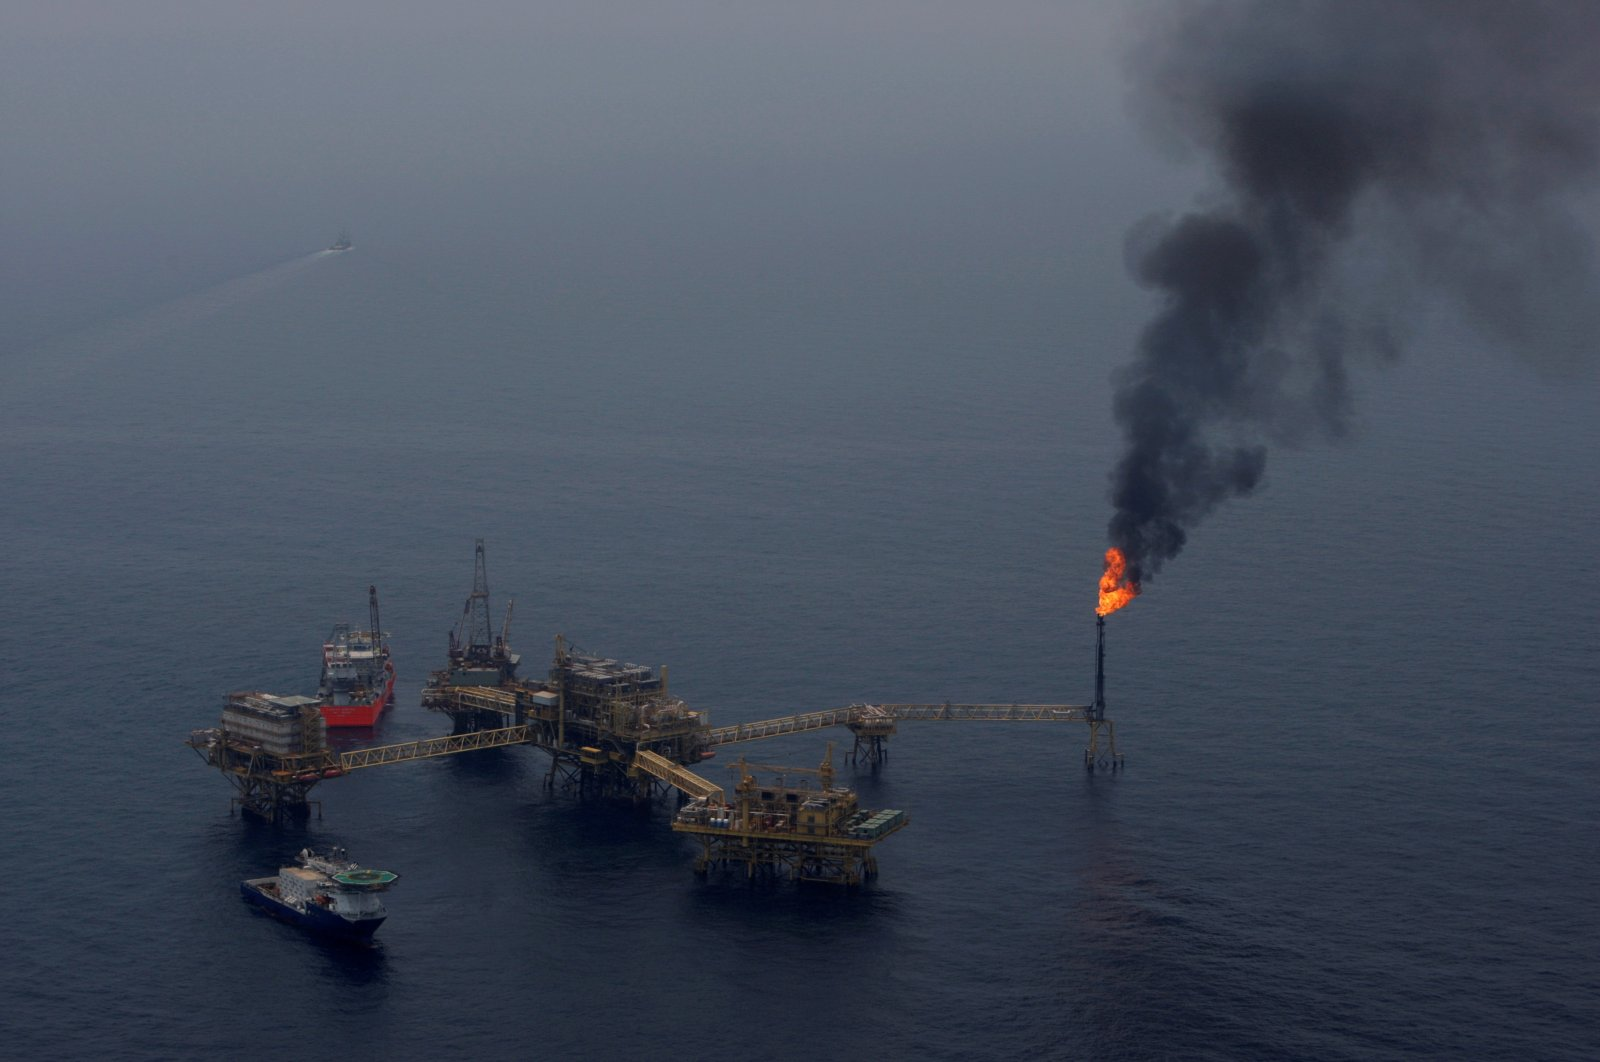 The Pemex oil platform Ku-Maloob-Zaap in the Bay of Campeche, Mexico, April 19, 2013. (Reuters Photo)